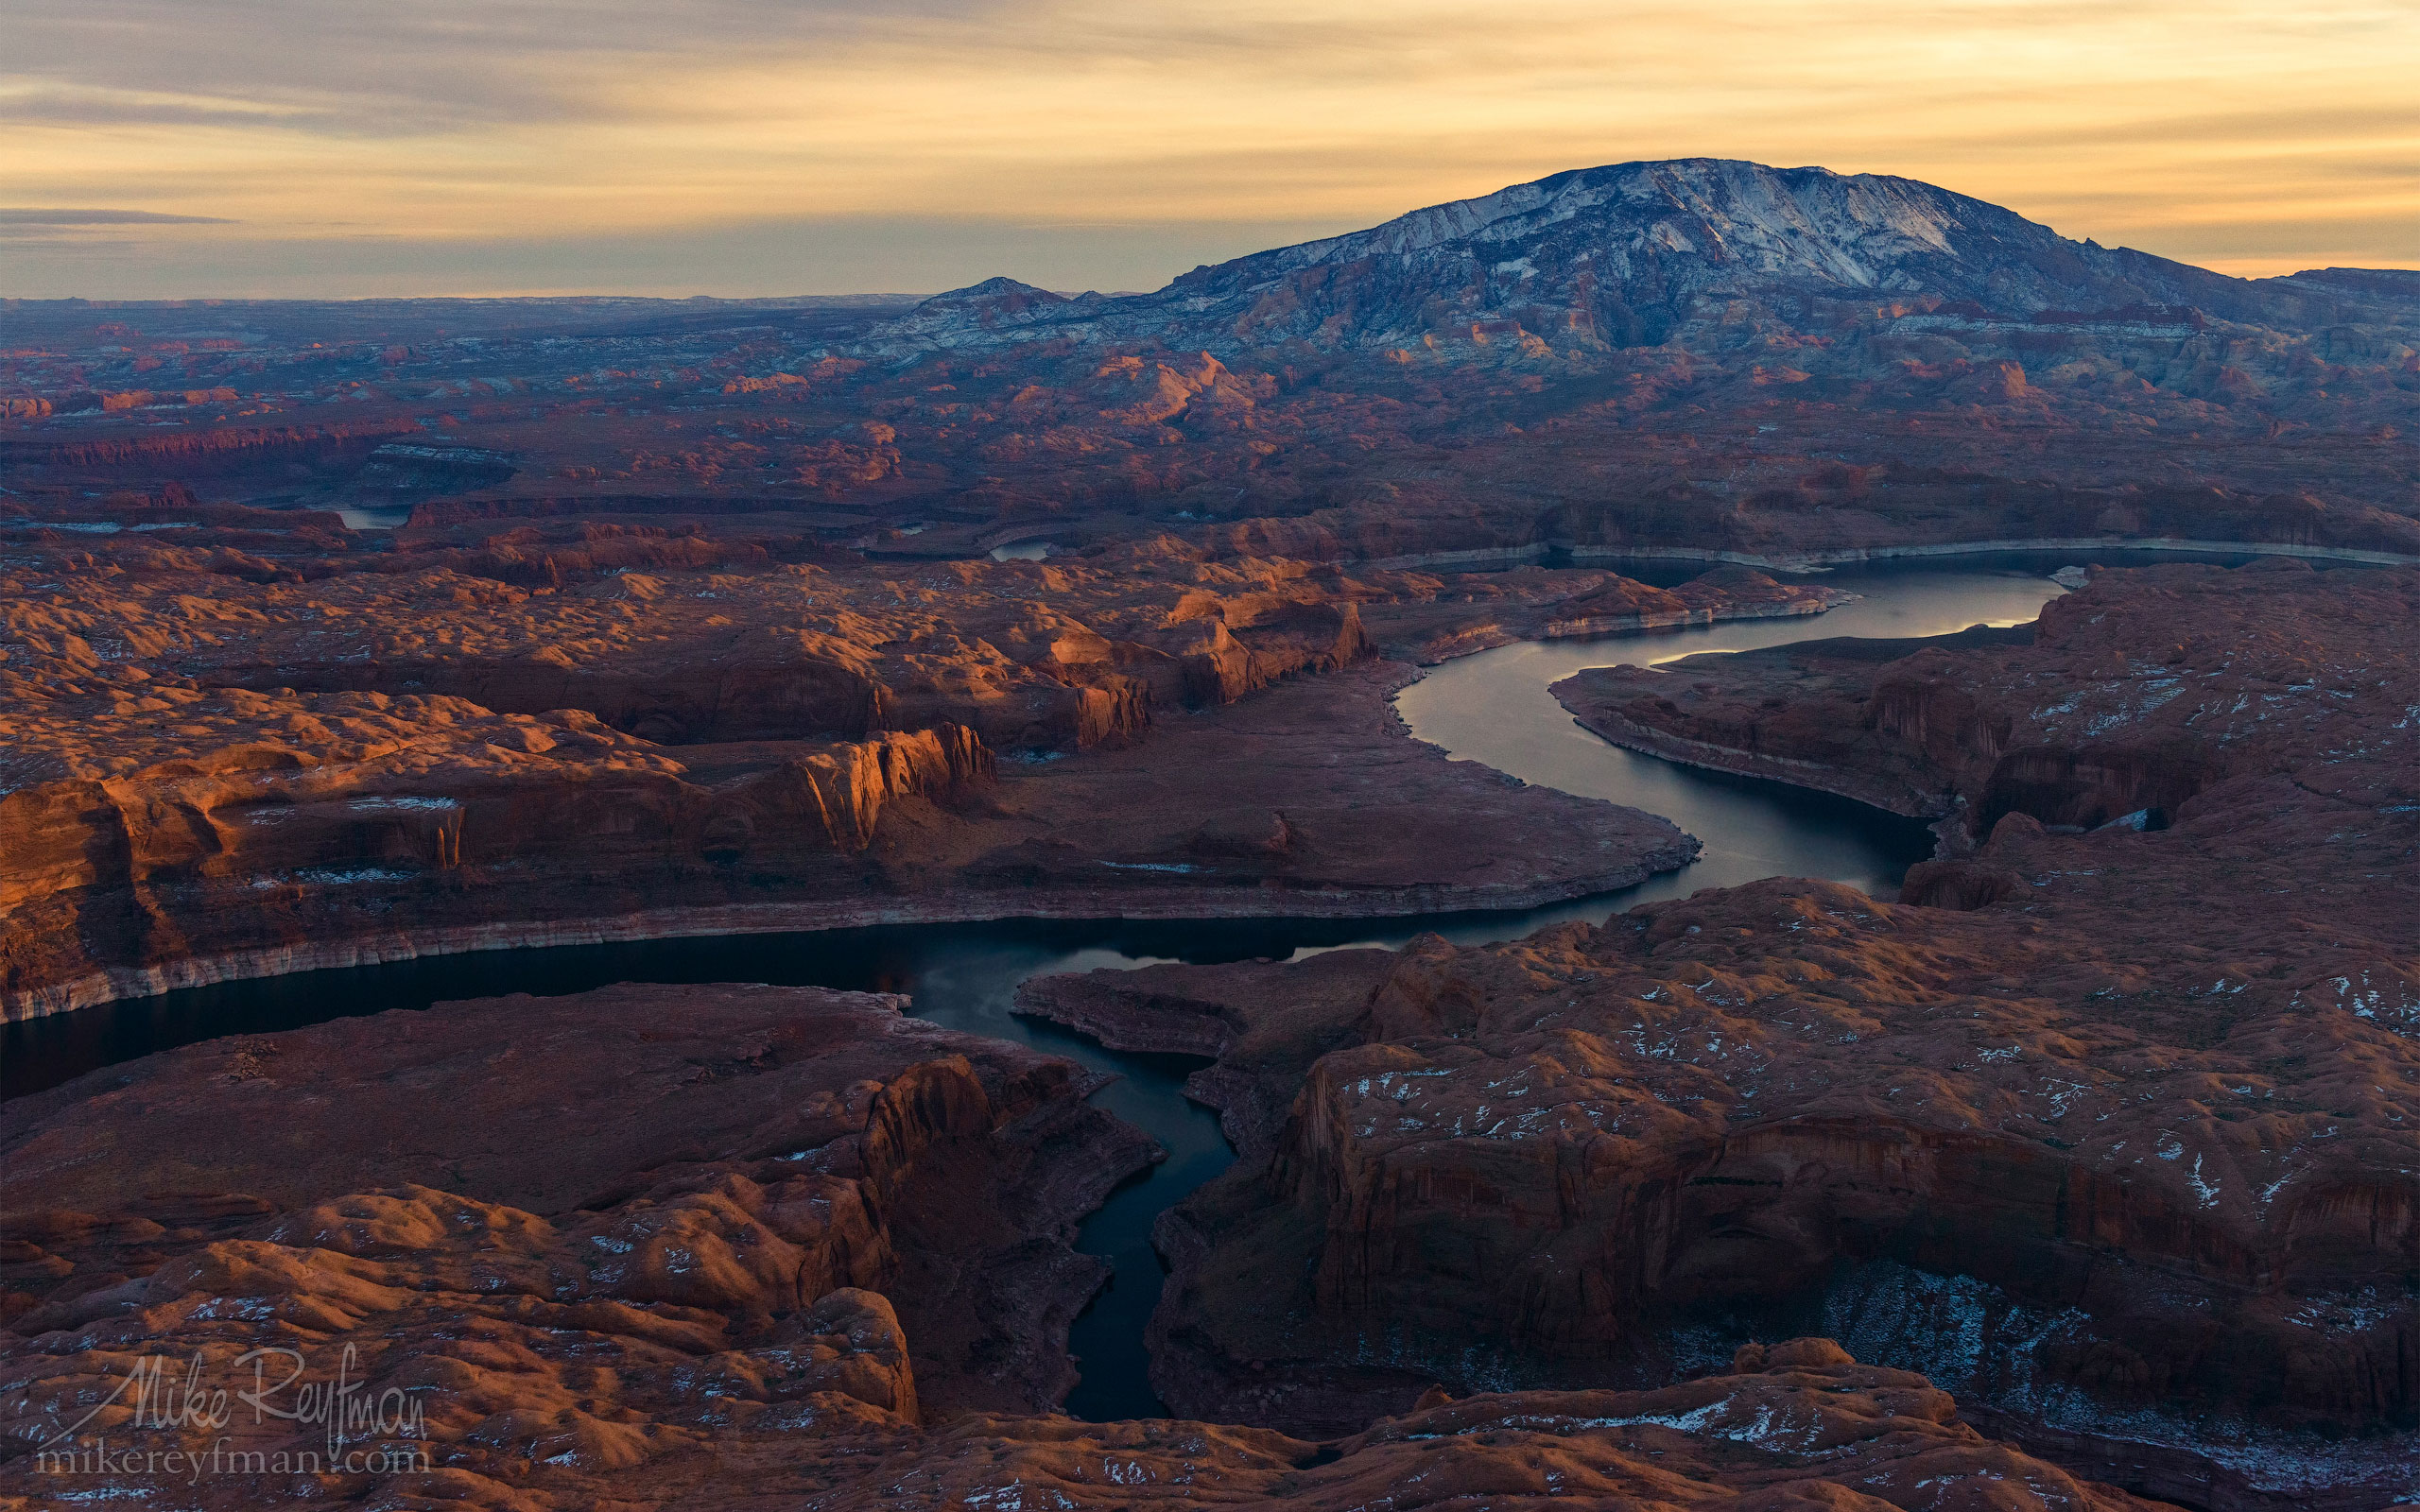 Colorado River and Navajo Mountain. Lake Powell, Glen Canyon NRA. Uta/Arizona, USA. Aerial 115-LP3_D8C9611.jpg - Lake Powell, Glen Canyon NAR. Colorado and Sun Juan Rivers. Utah/Arizona, USA  - Mike Reyfman Photography